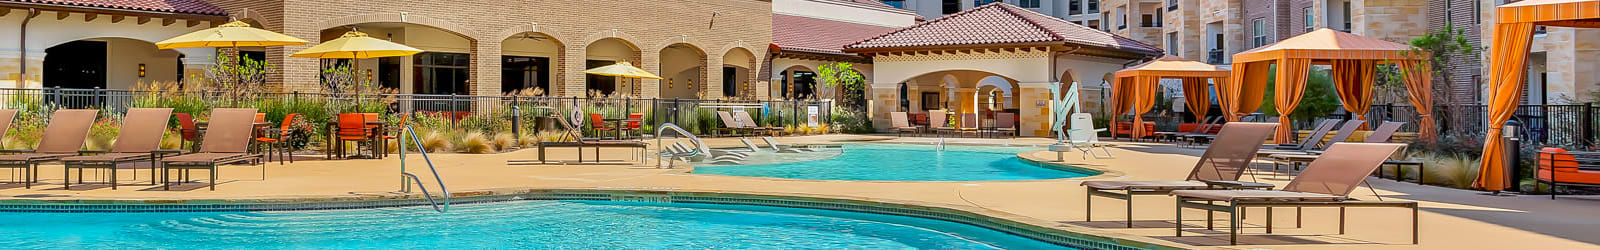 Floor plans at Villas at the Rim in San Antonio, Texas